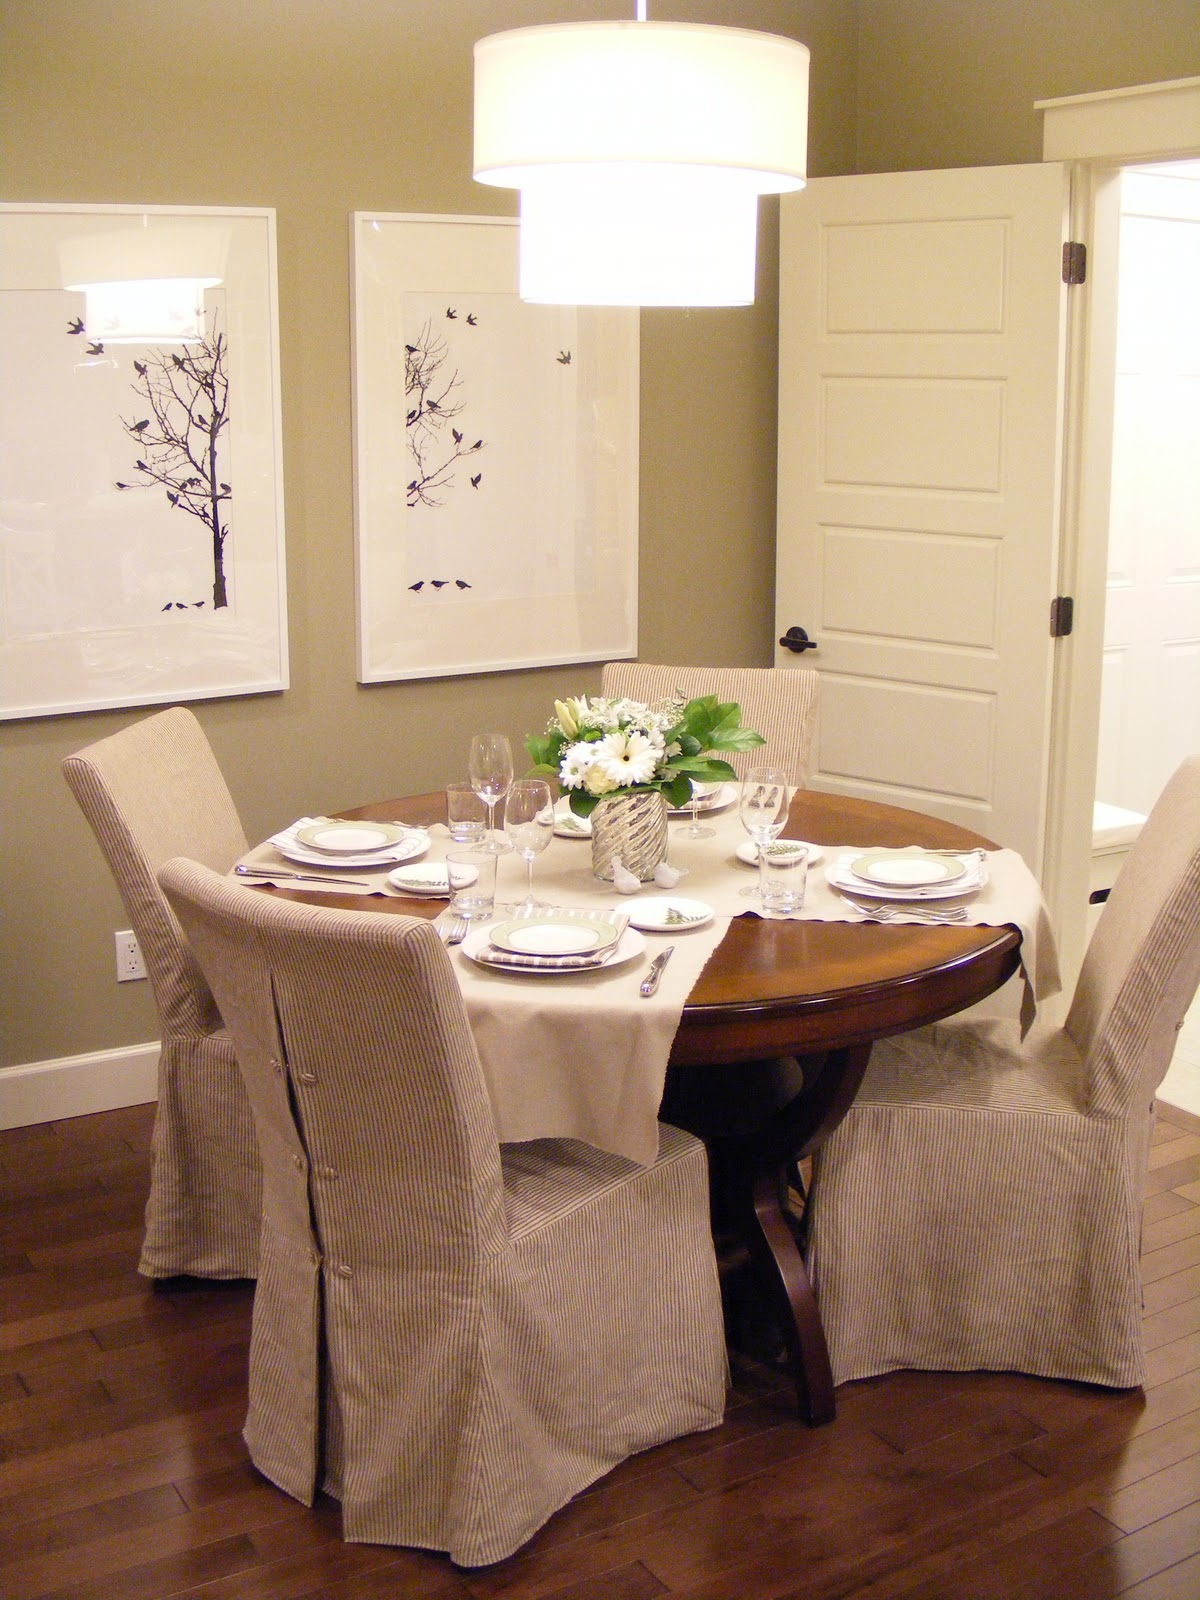 Dining room slip covers - large and beautiful photos. Photo to ...